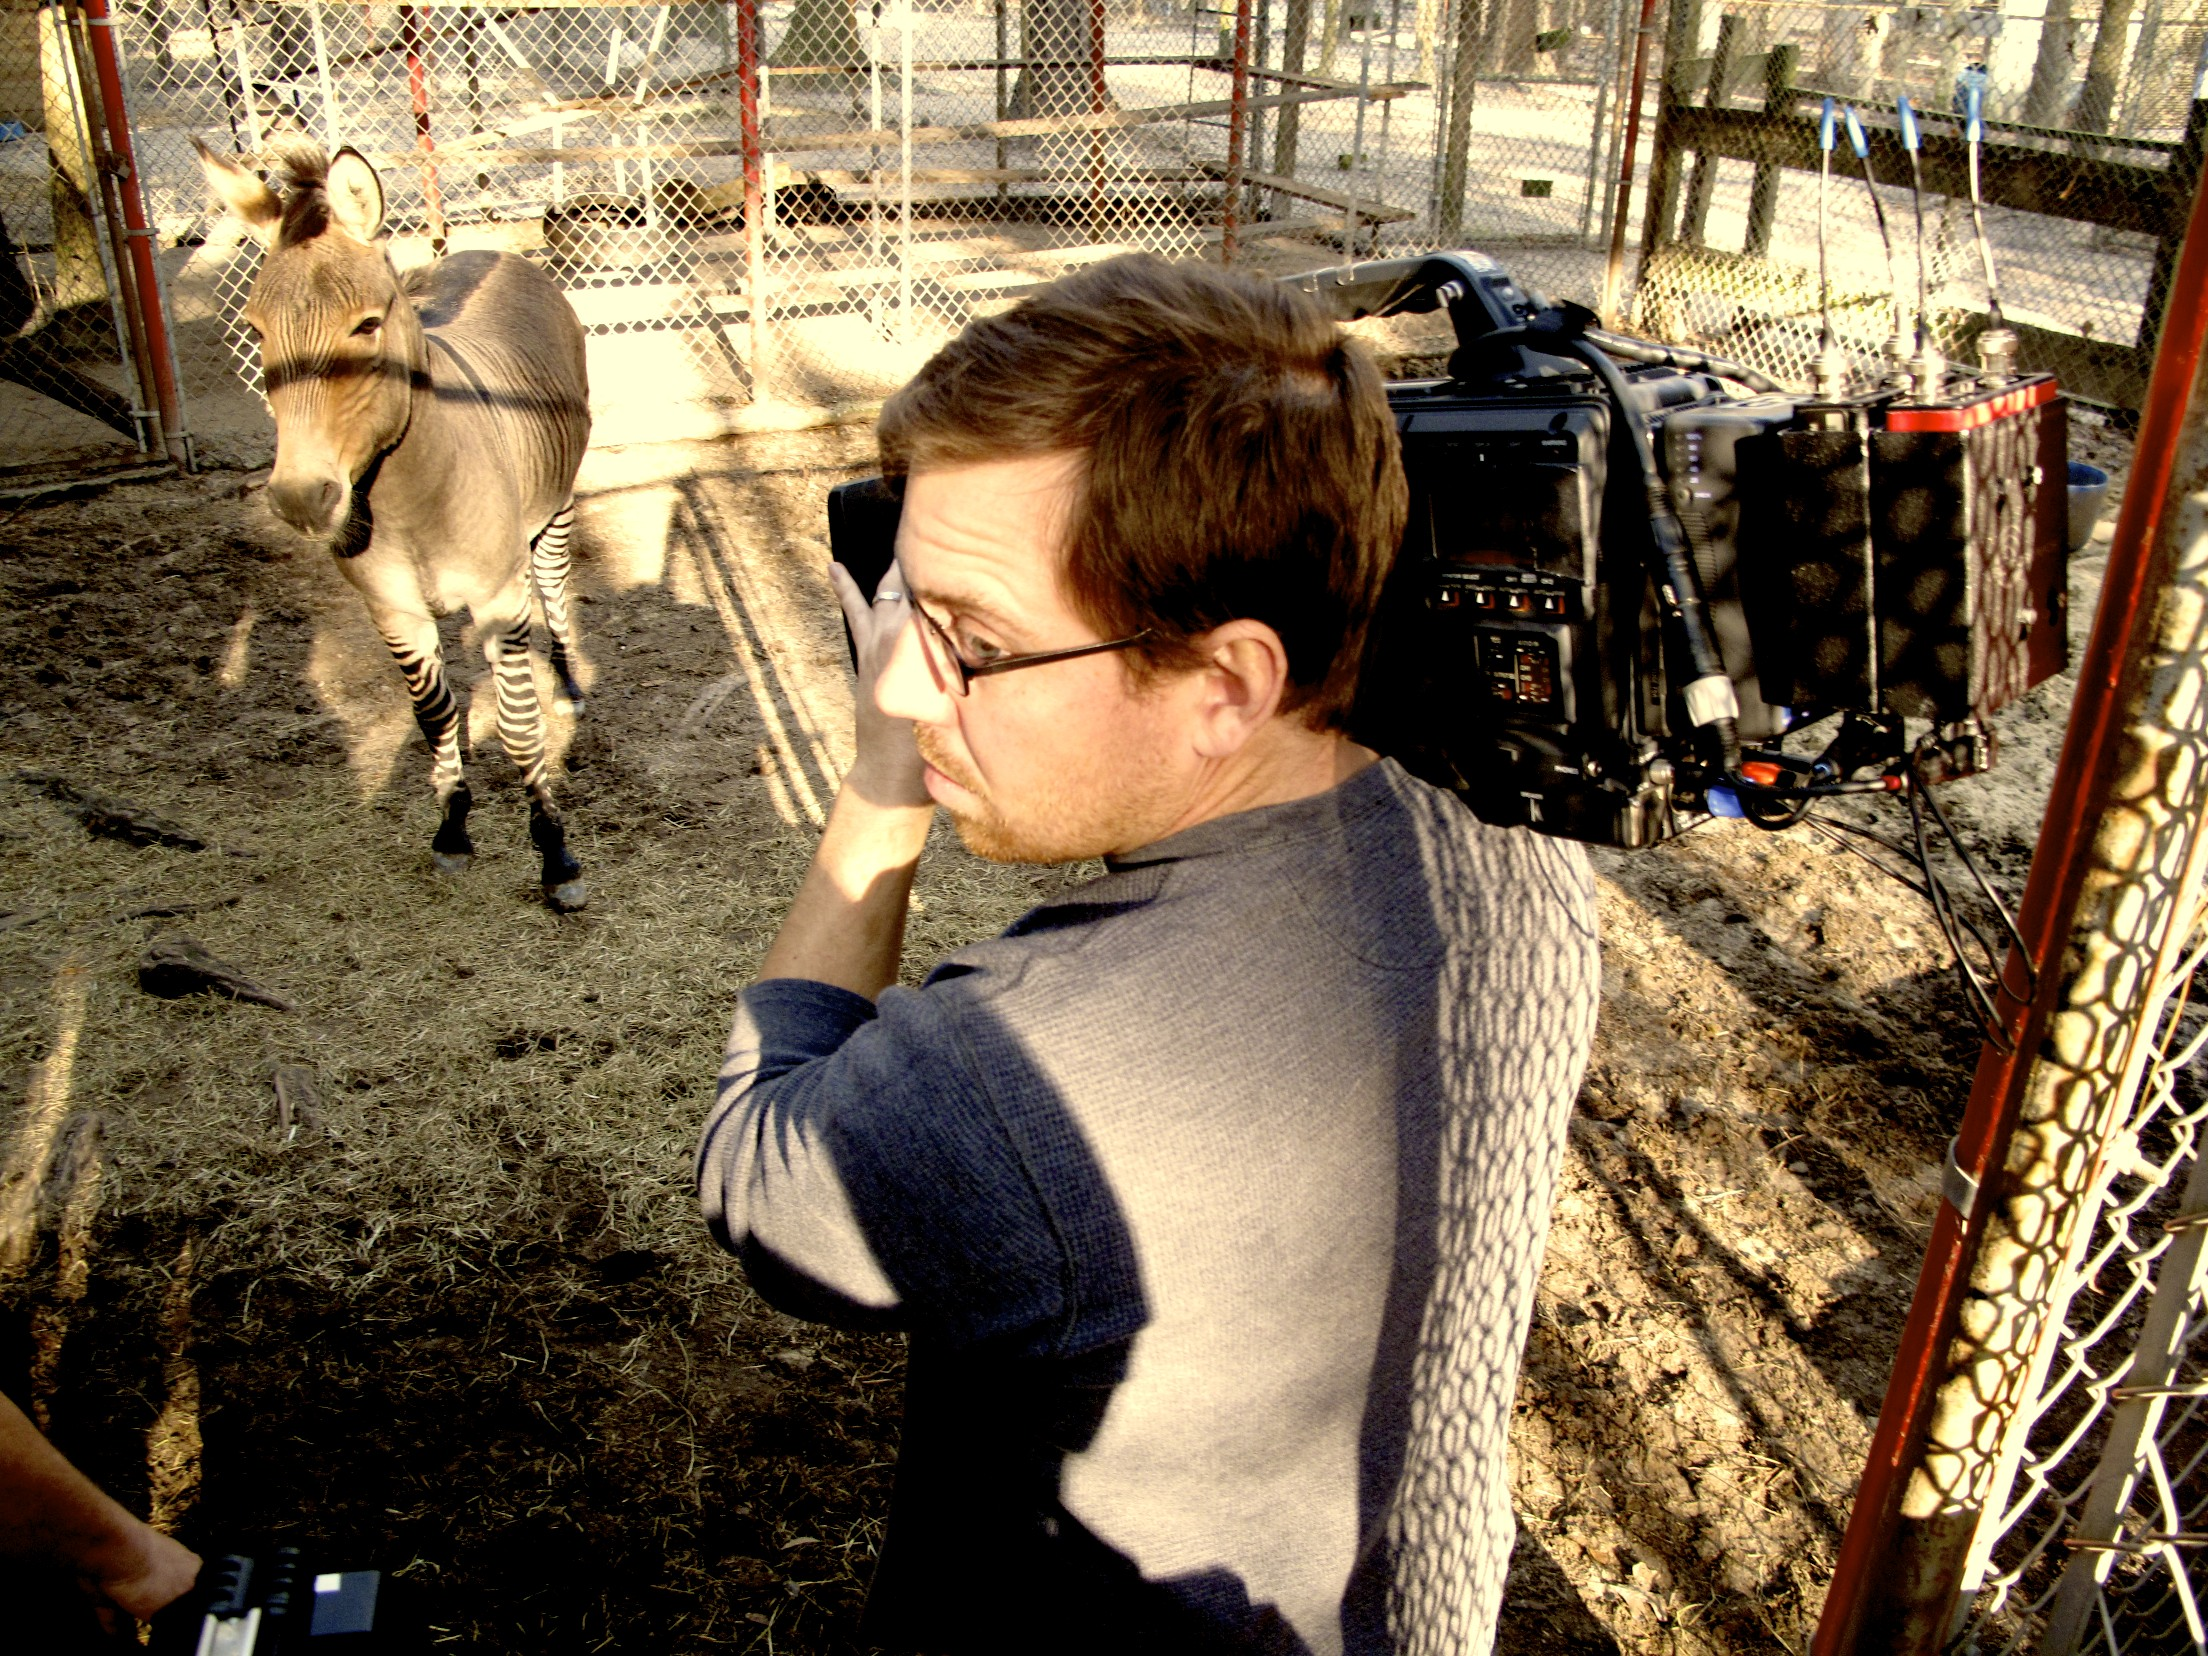 Zonkey Over Shoulder Raleigh Video Crew and ABCs Nightline, Enter the Eye of the Liger